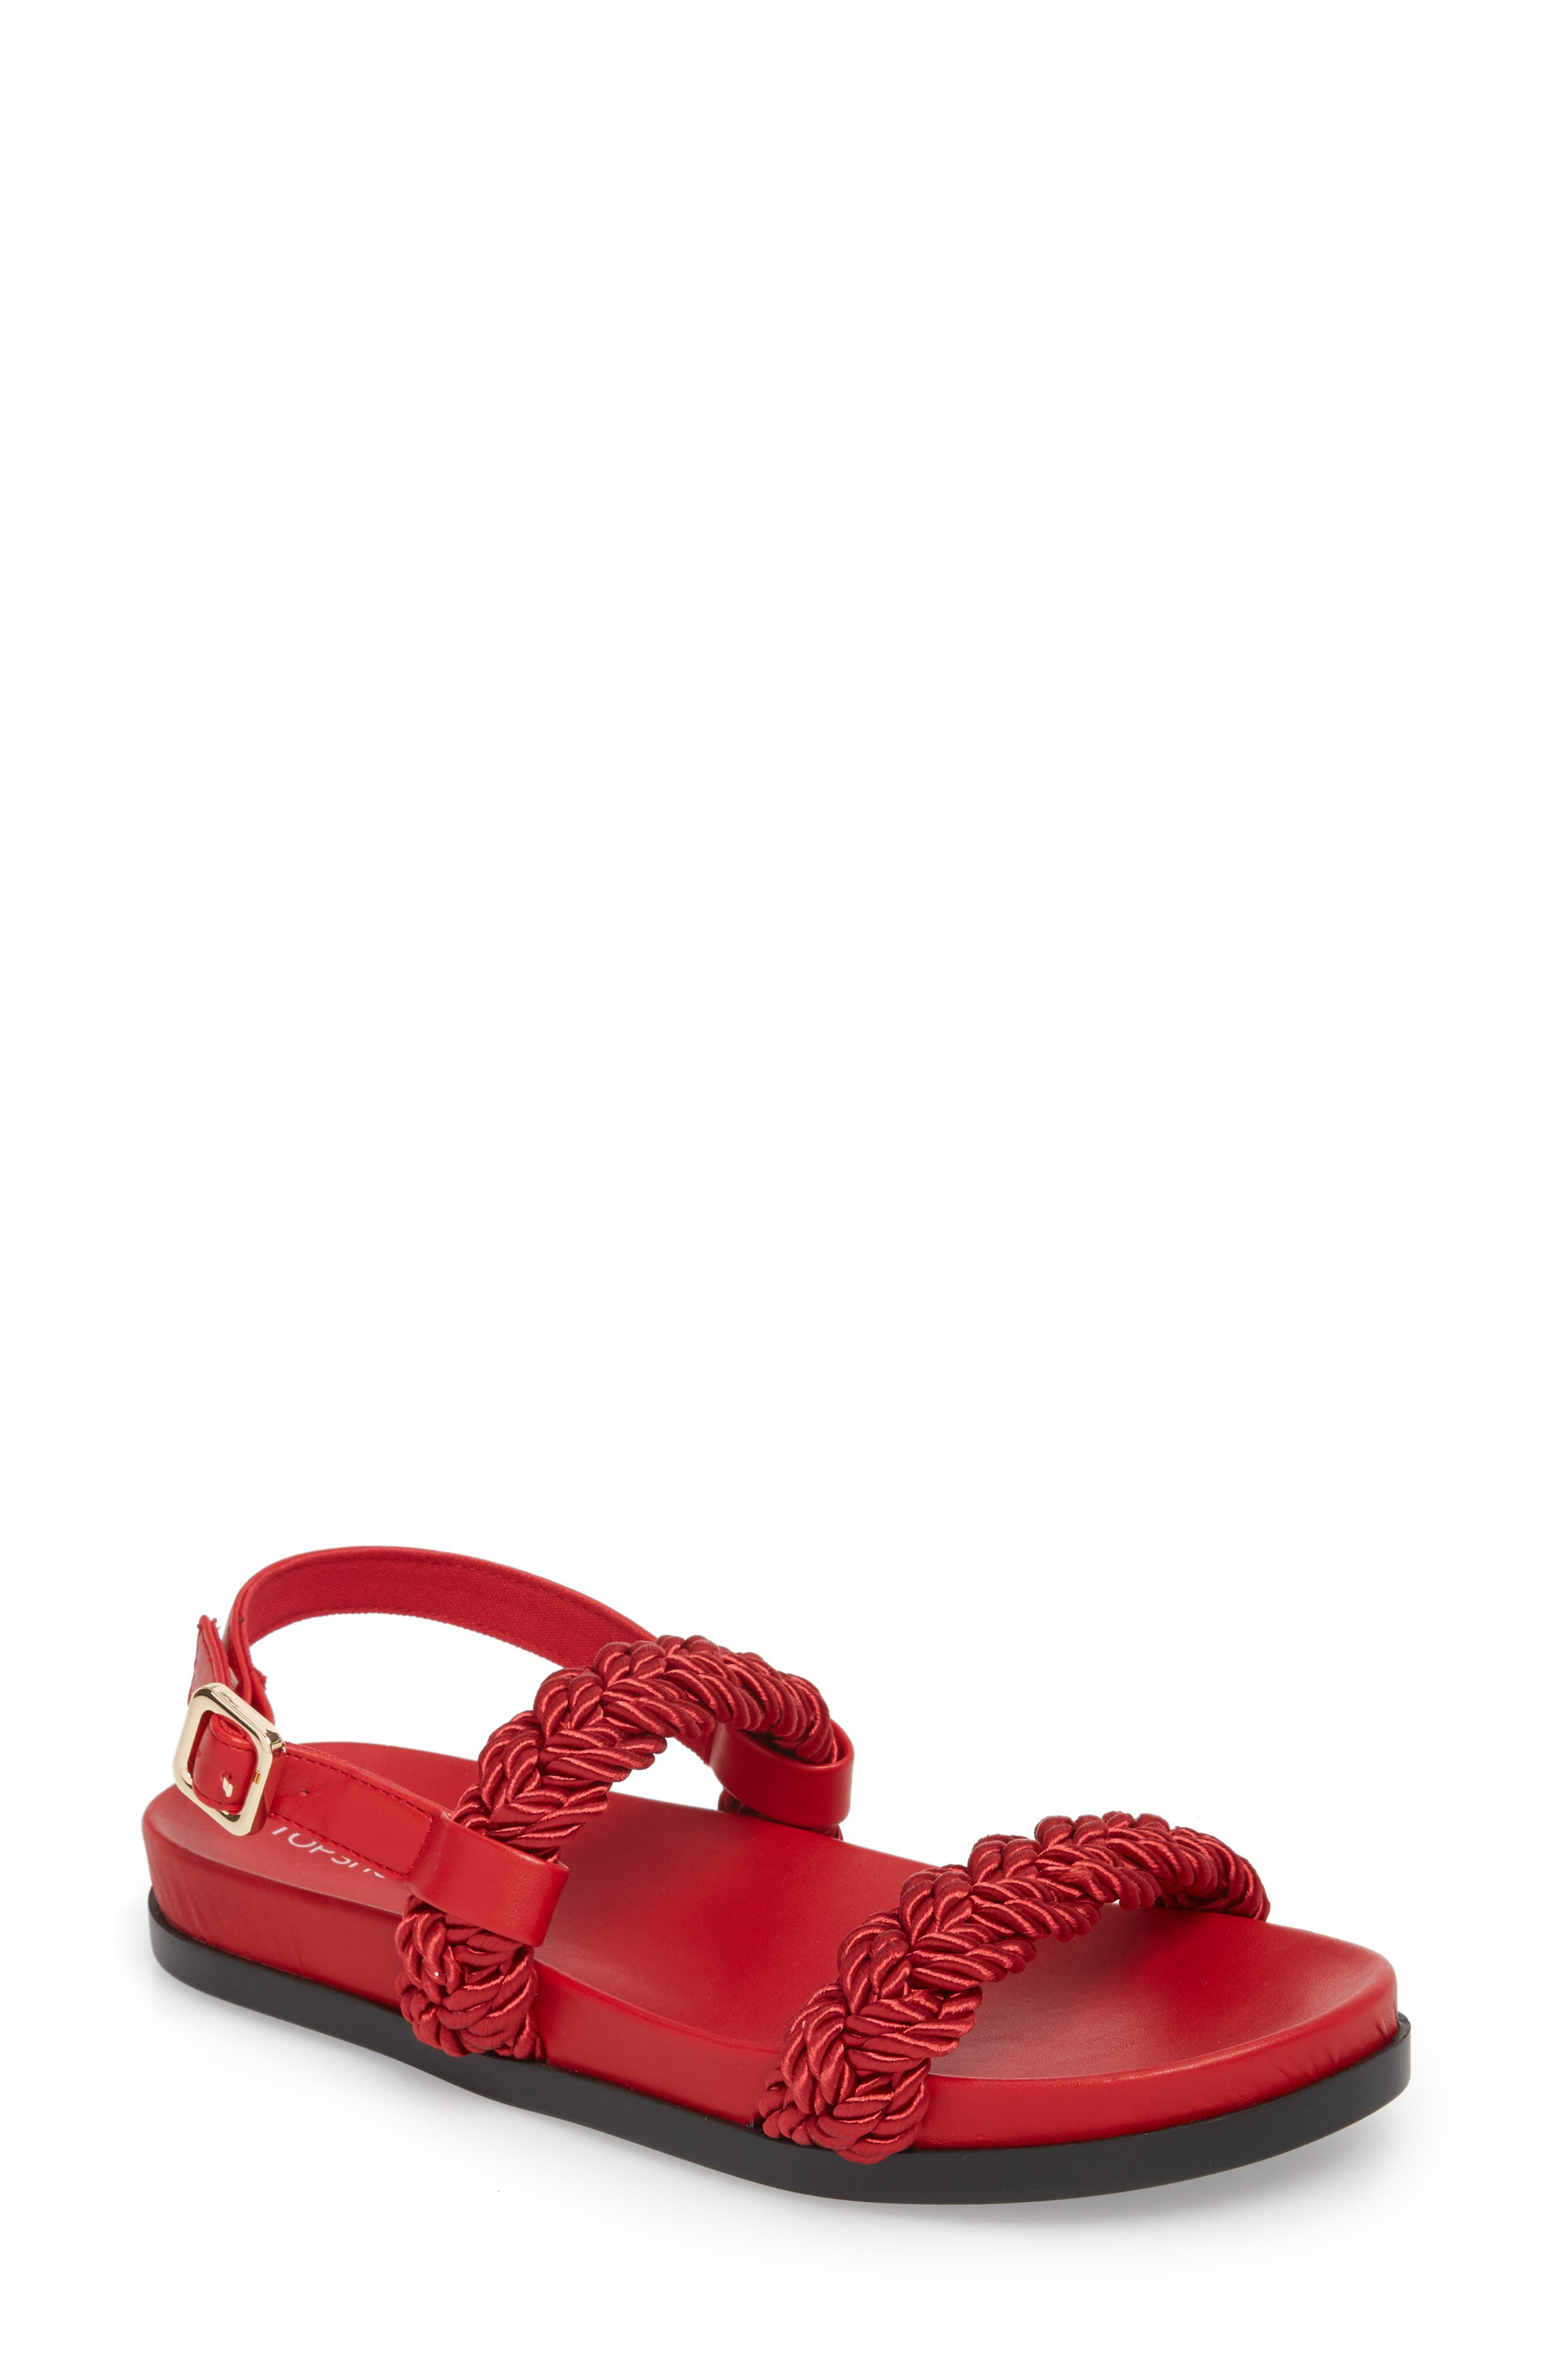 Hackney Rope Footbed Sandals,                         Main,                         color, 600